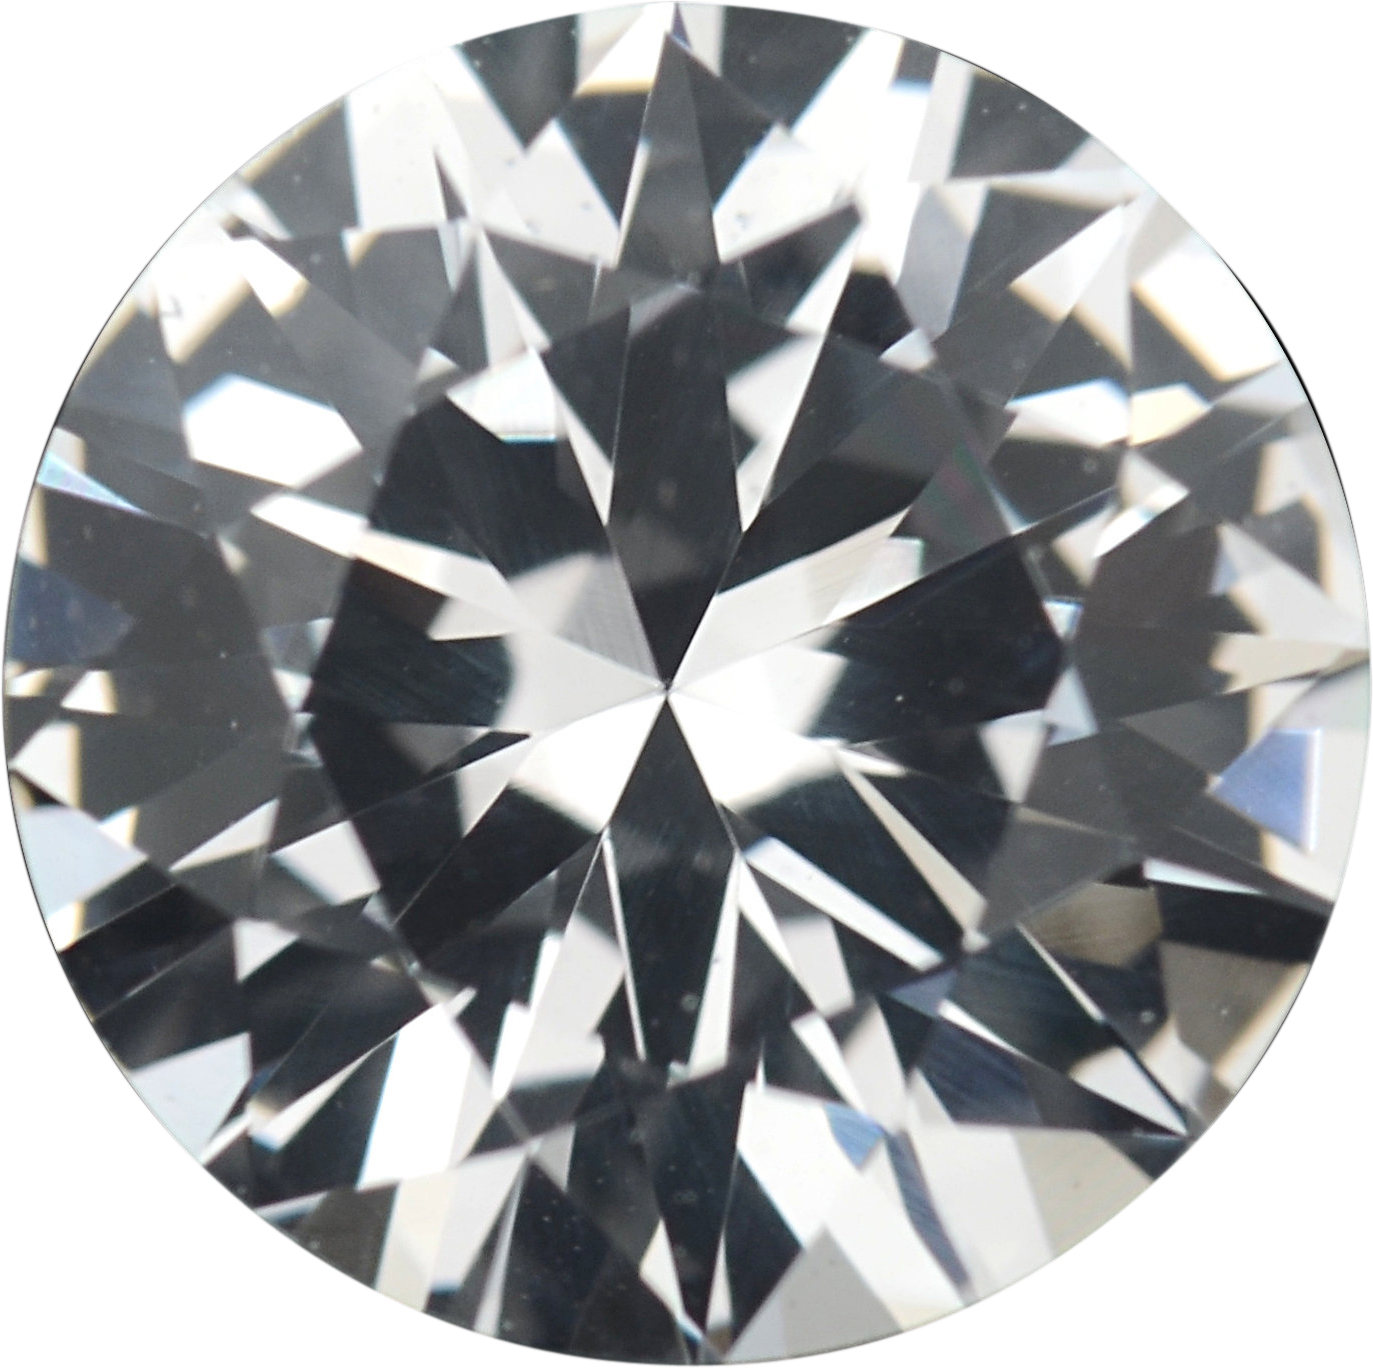 1.38 carats White Loose Sapphire Gemstone in Round Cut, 6.93 mm